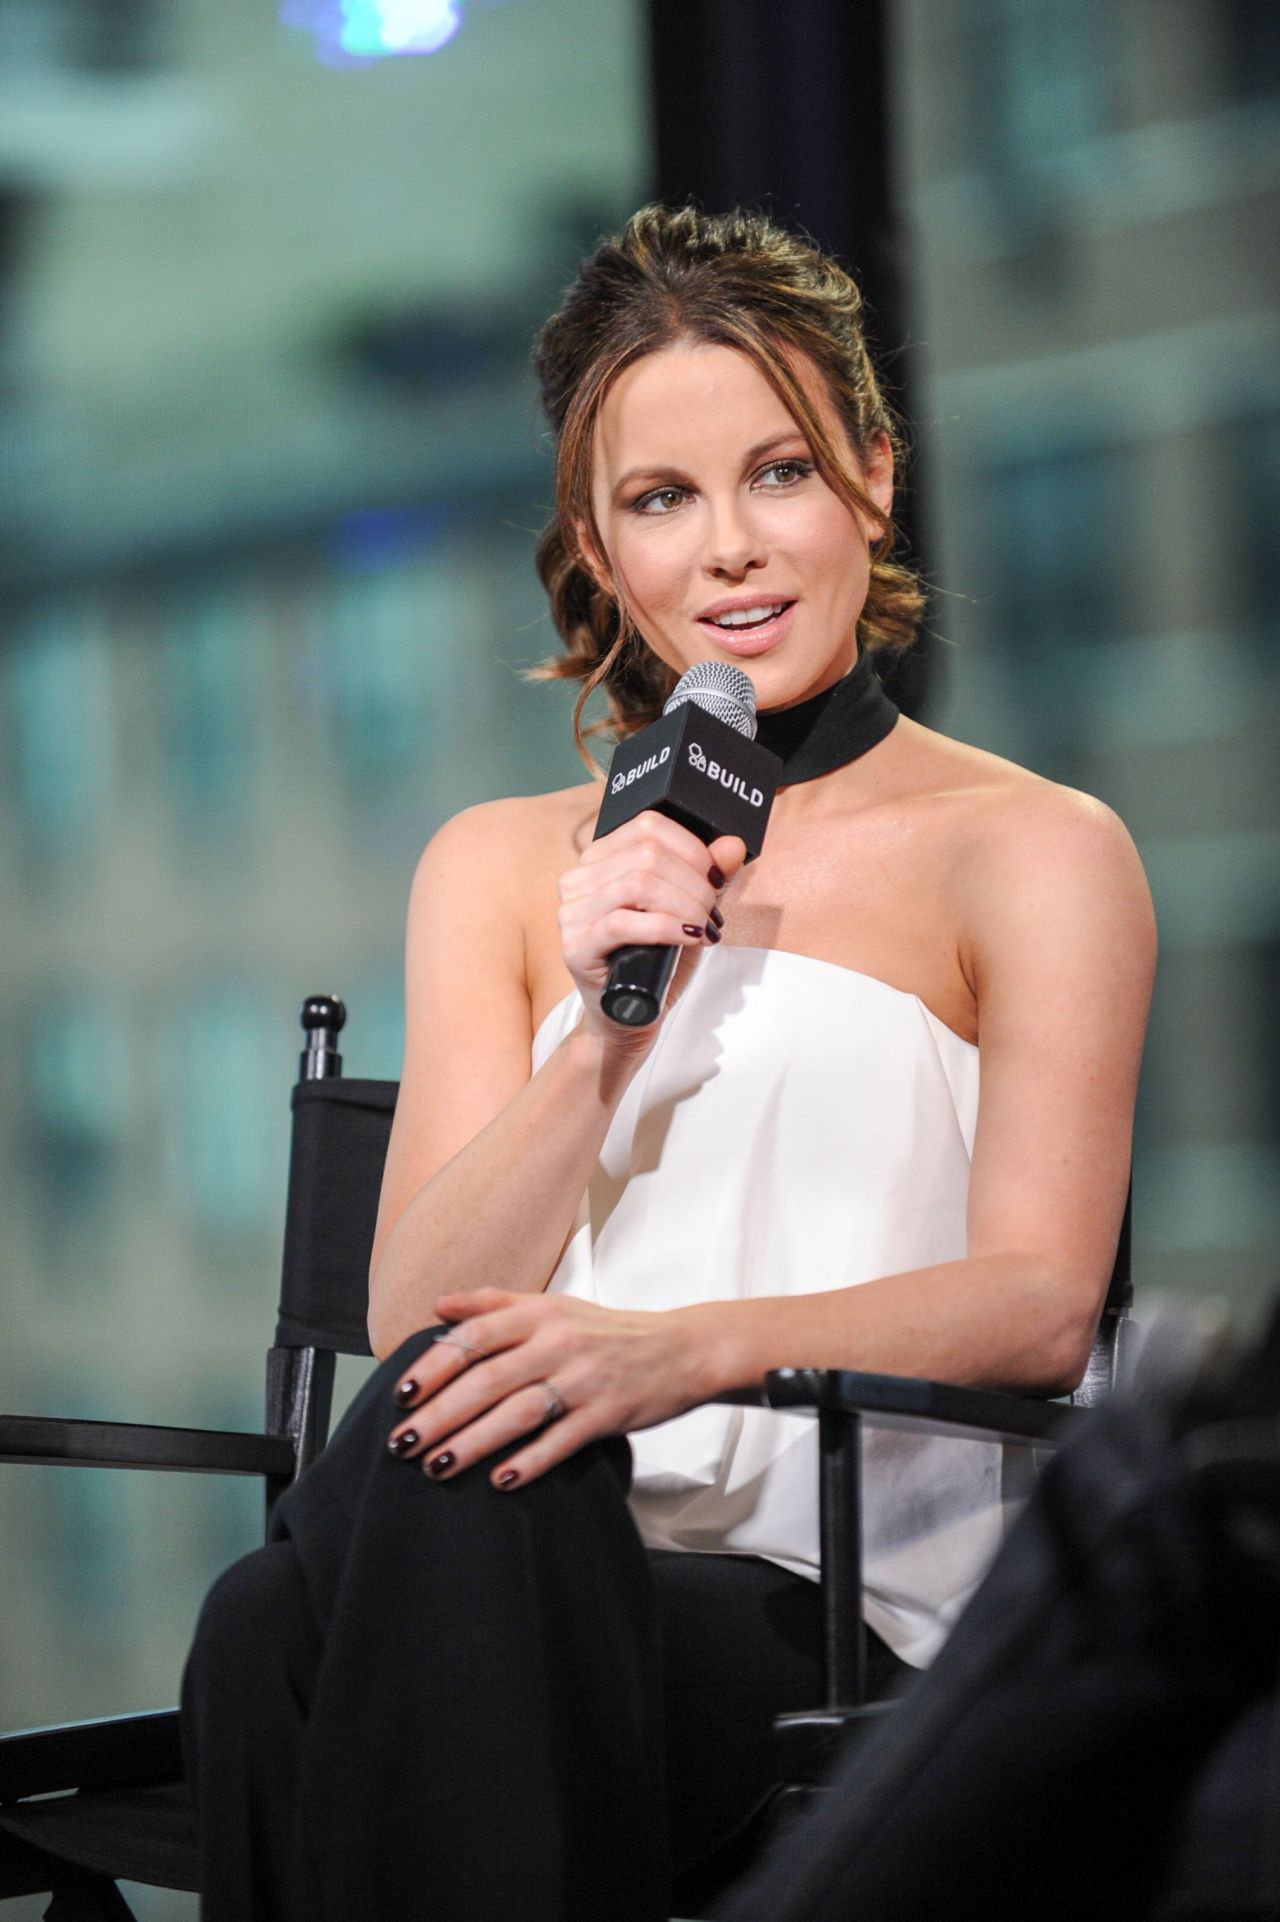 Kate Beckinsale - AOL Build Speaker Series in NYC 1/4/ 2017 Kate Beckinsale